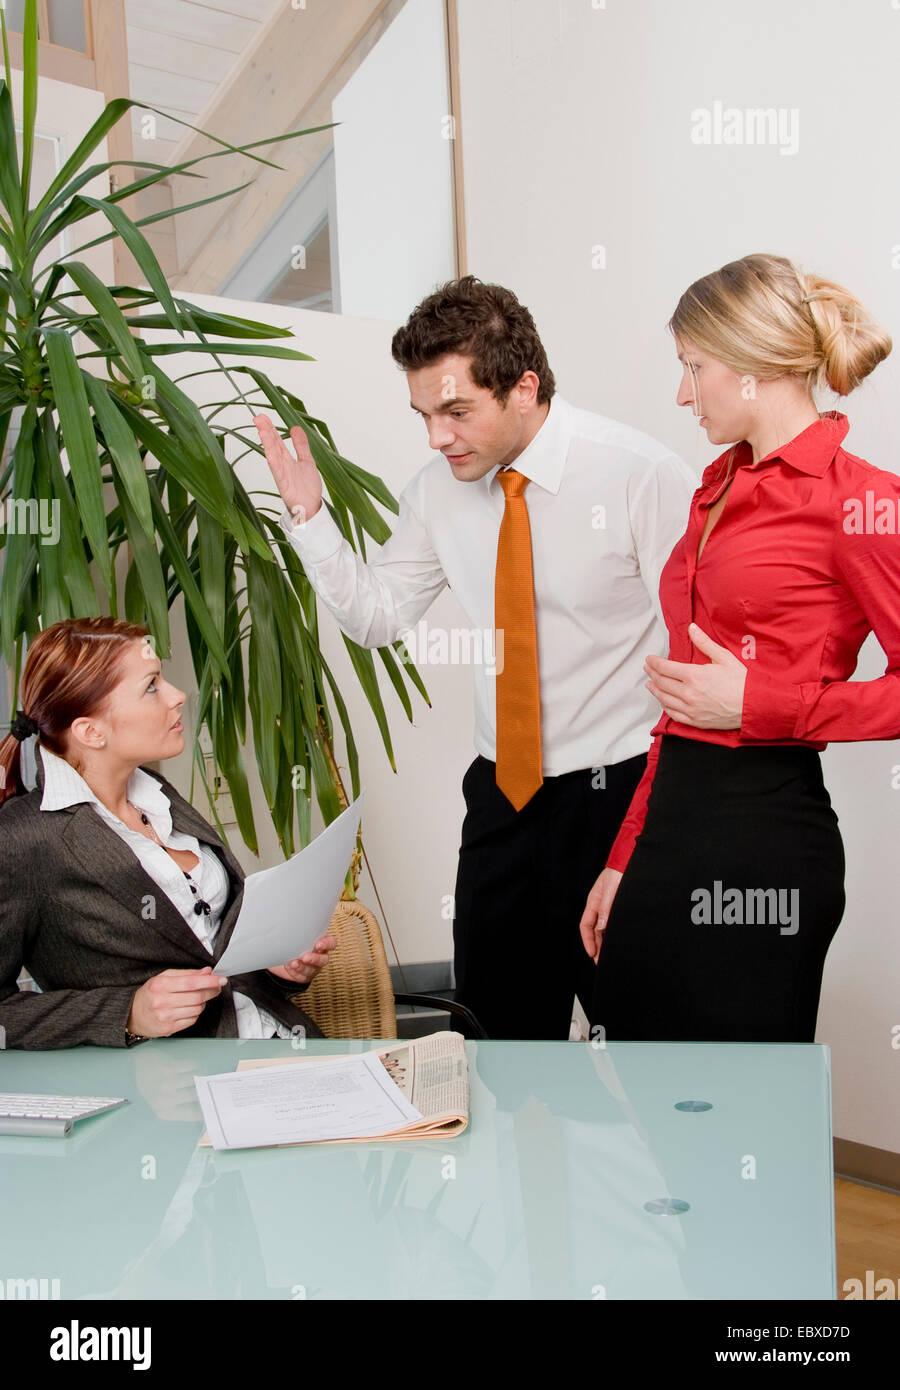 conflict in office - Stock Image